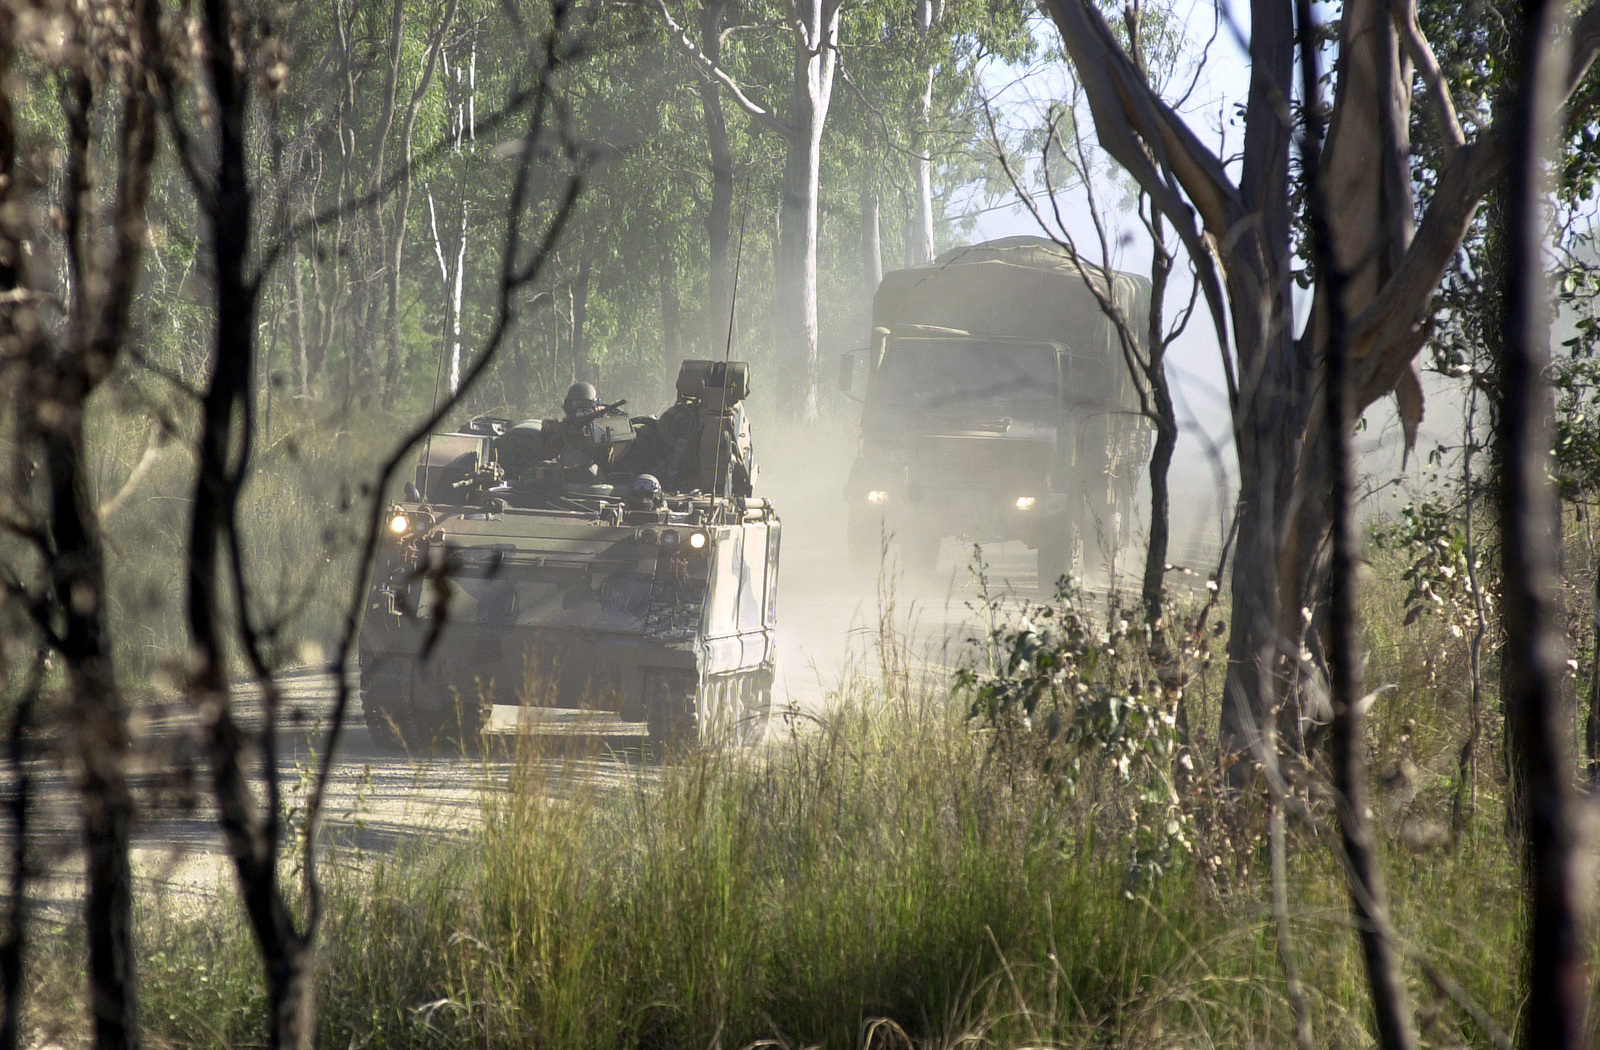 An Australian M113A1 Armored Personnel Carrier (APC) leads a convoy of Mercedes Benz Unimog U1700L trucks to its destination through Shoalwater Bay, Australia, during Exercise TANDEM THRUST 01. TANDEM THRUST 01 is a combined US, Australian and Canadian military training exercise